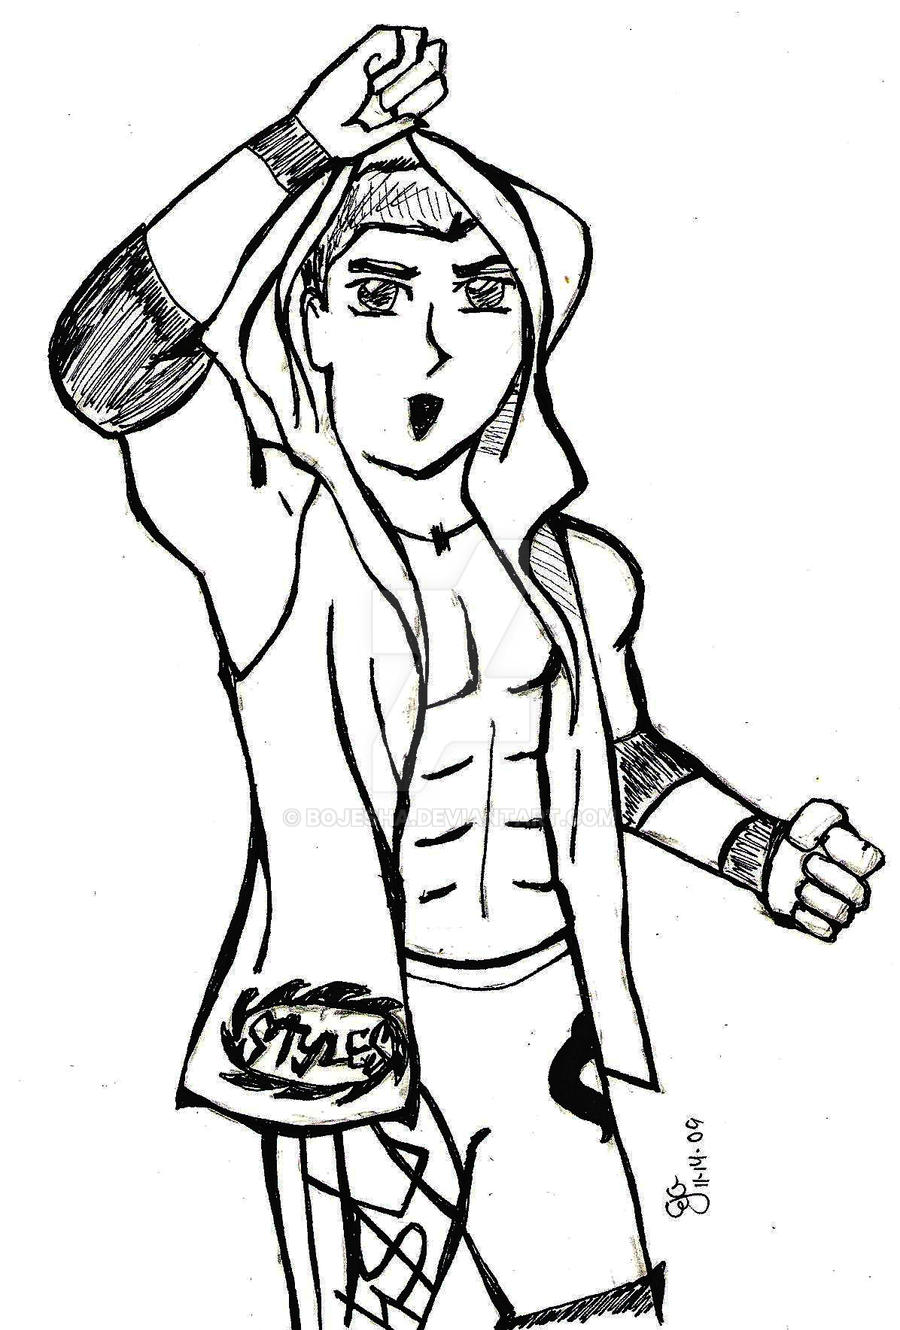 aj styles coloring pages aj styles by bojesha on deviantart